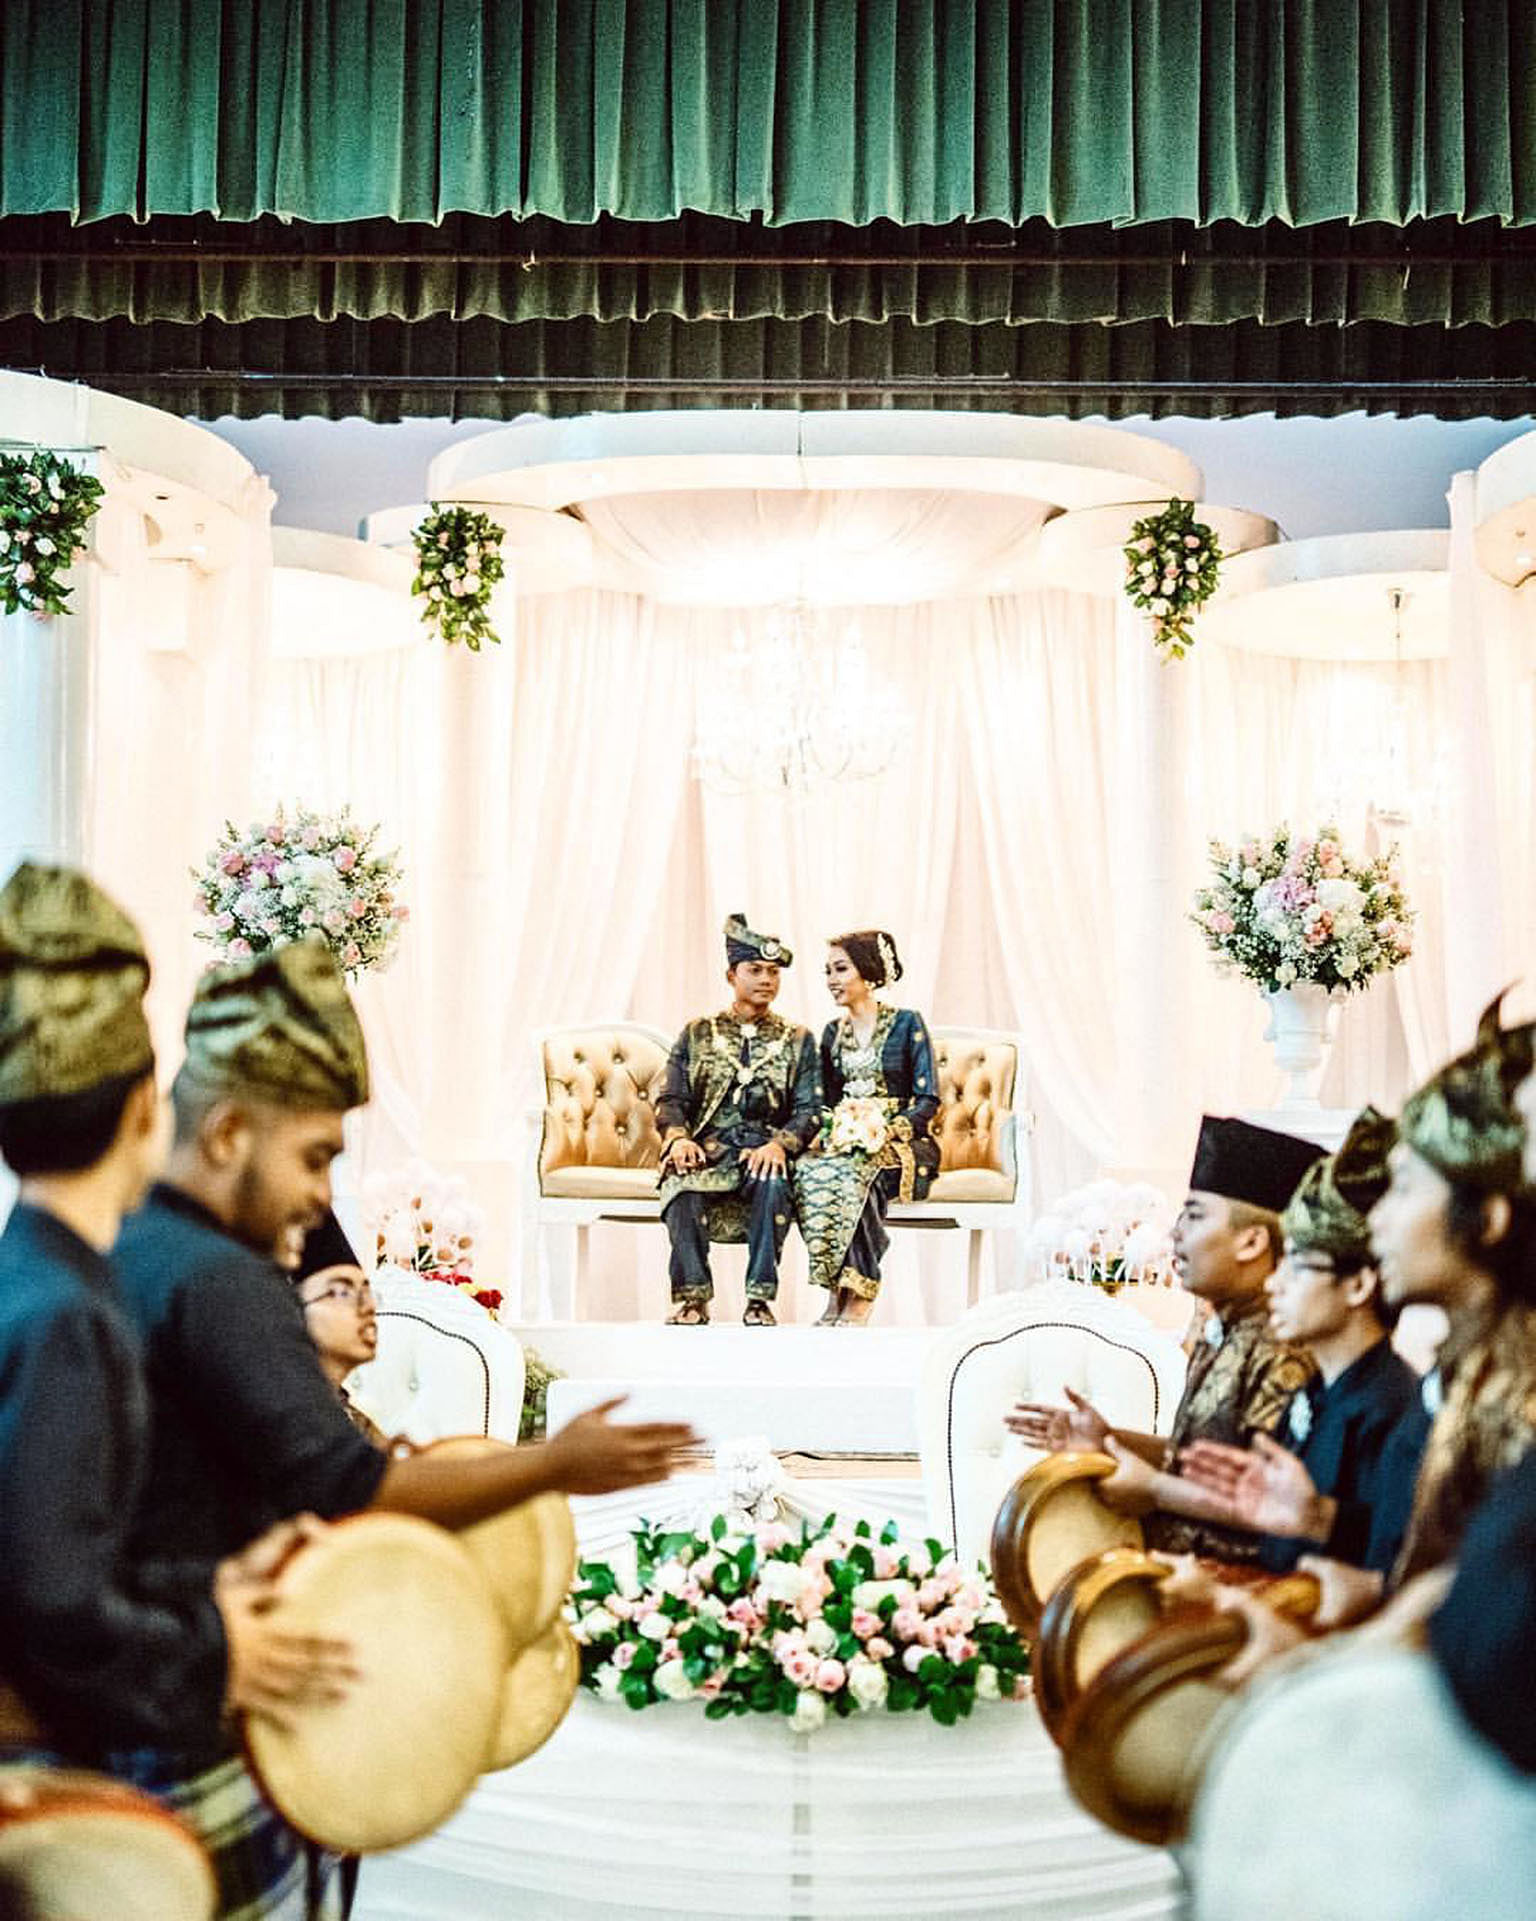 Malay S Paying More For Alternative Wedding Venues Singapore News Top Stories The Straits Times